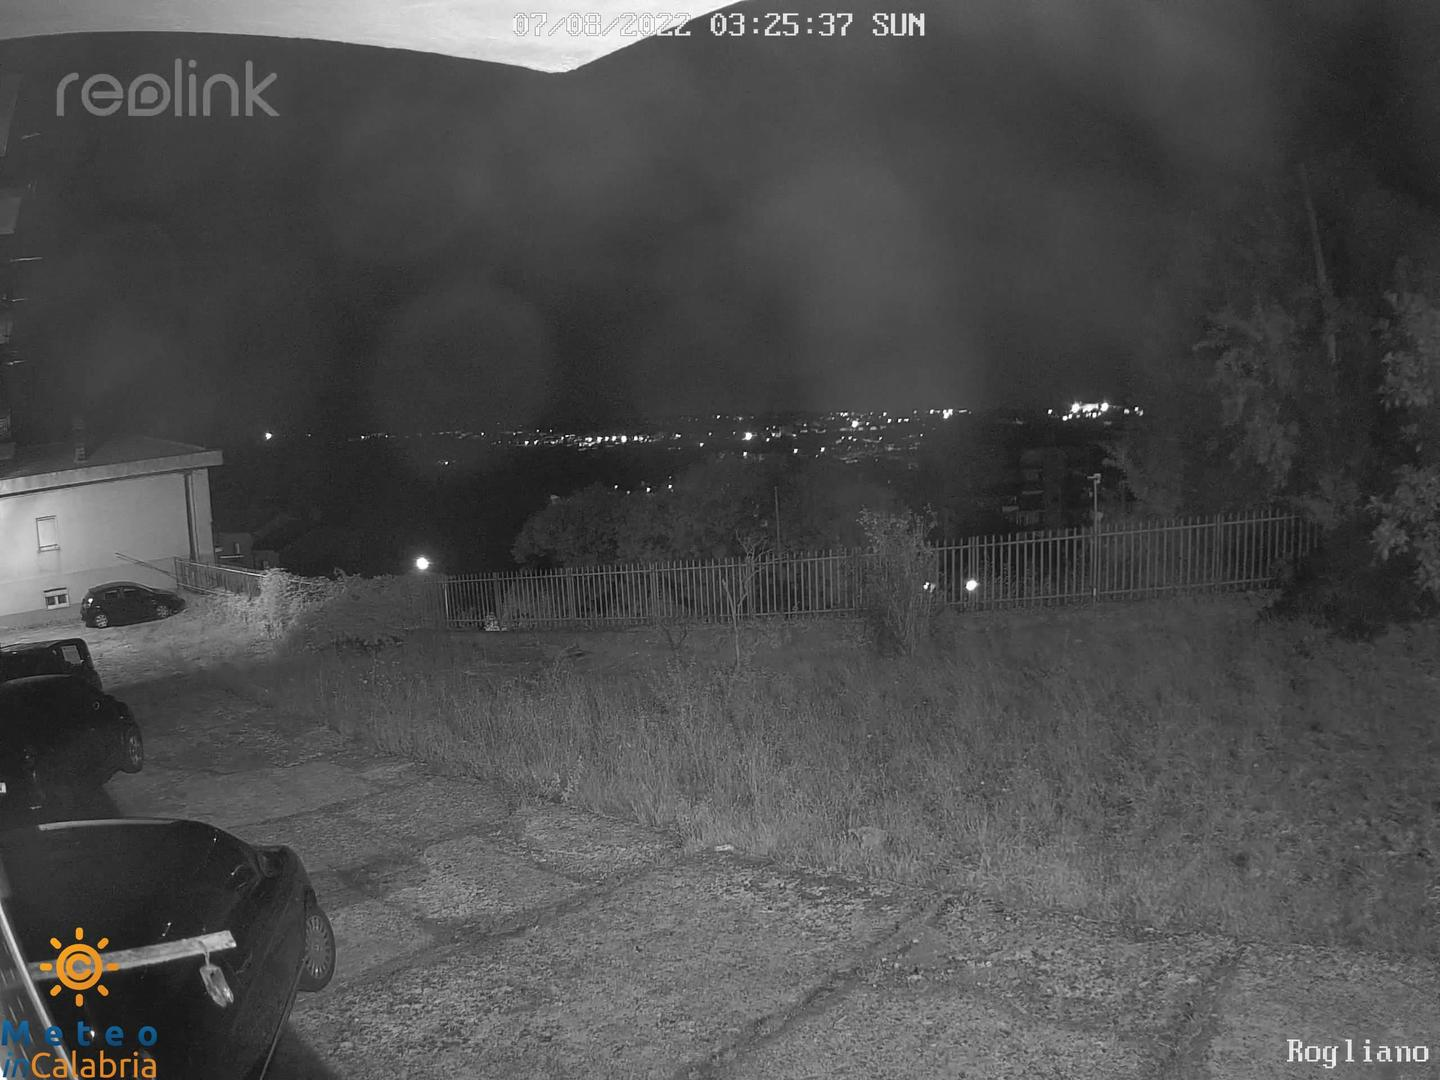 Webcam di Rogliano